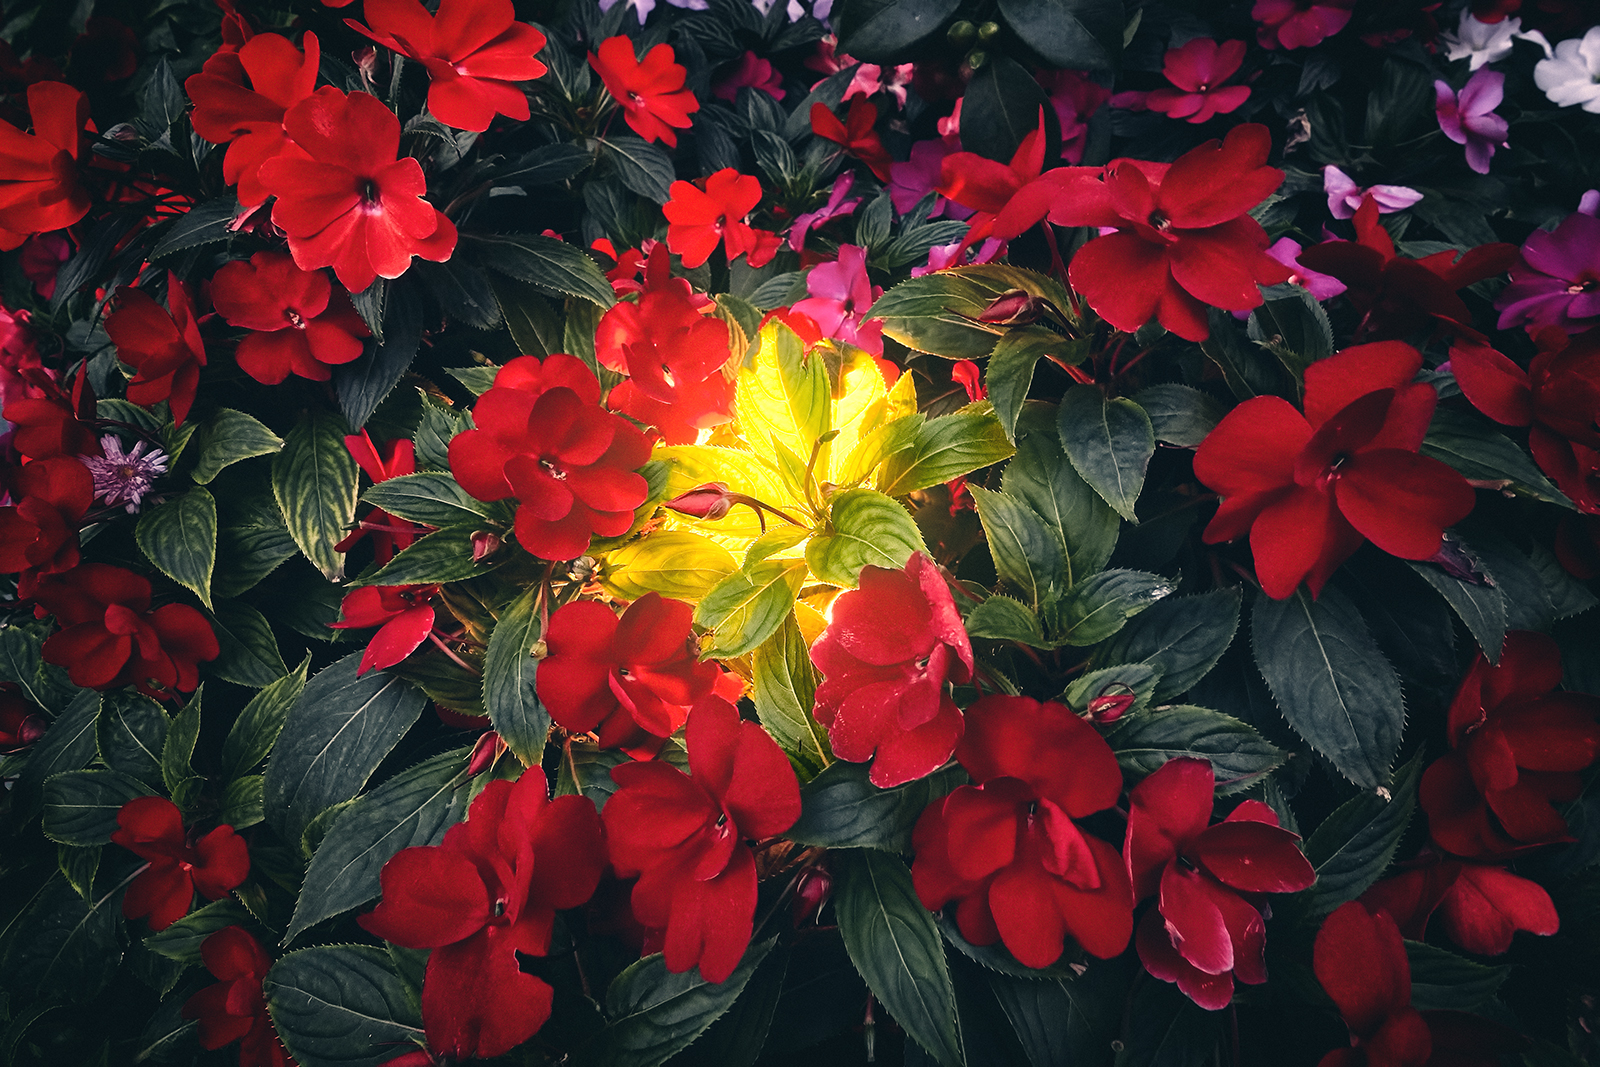 Impatiens Flowers and Buds